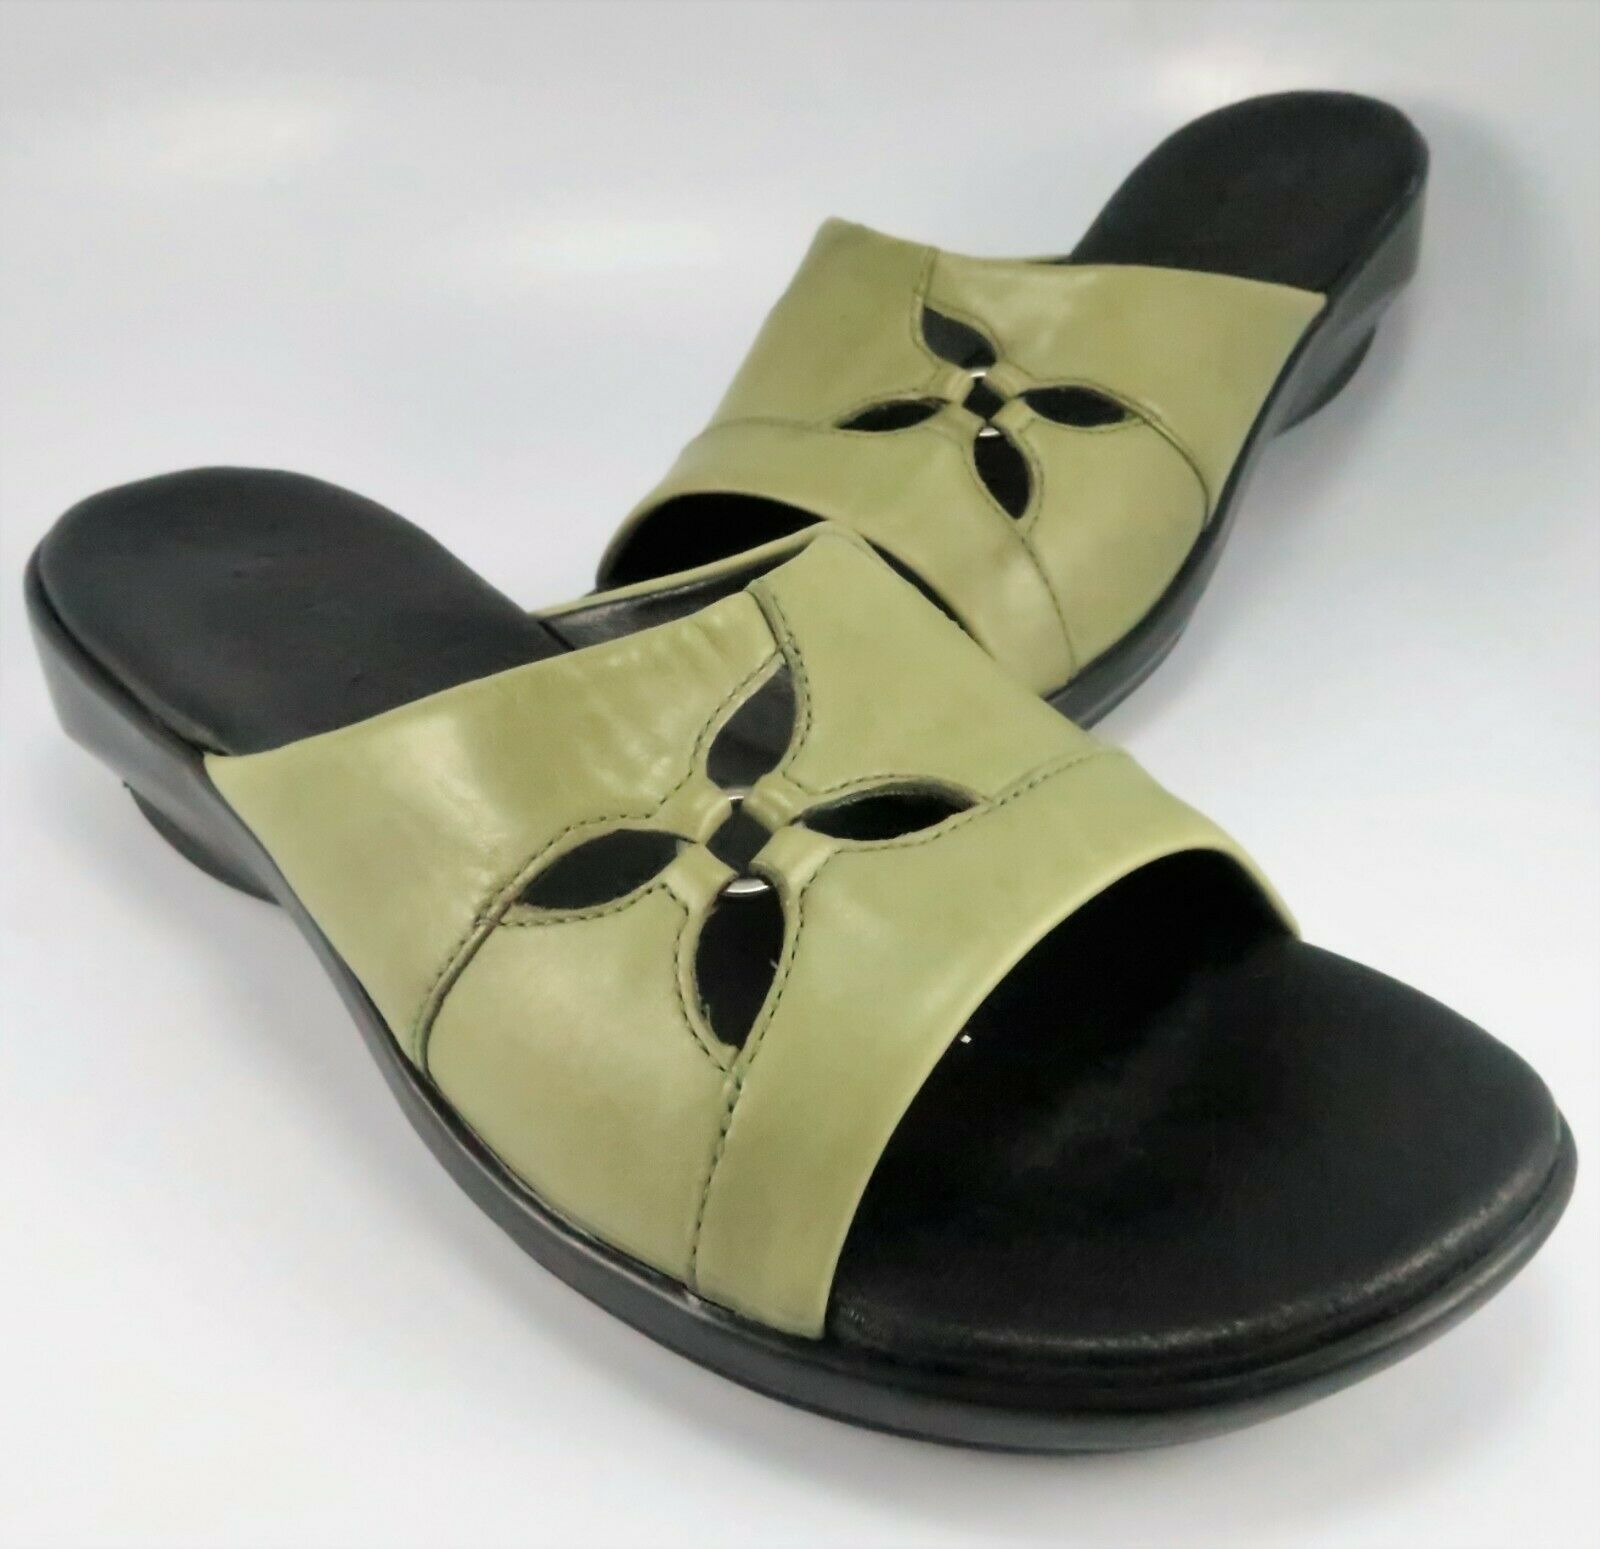 Clarks Open-Toe Slide Sandals Womens Size 8M Olive Leather Wedge Mules Slip-Ons